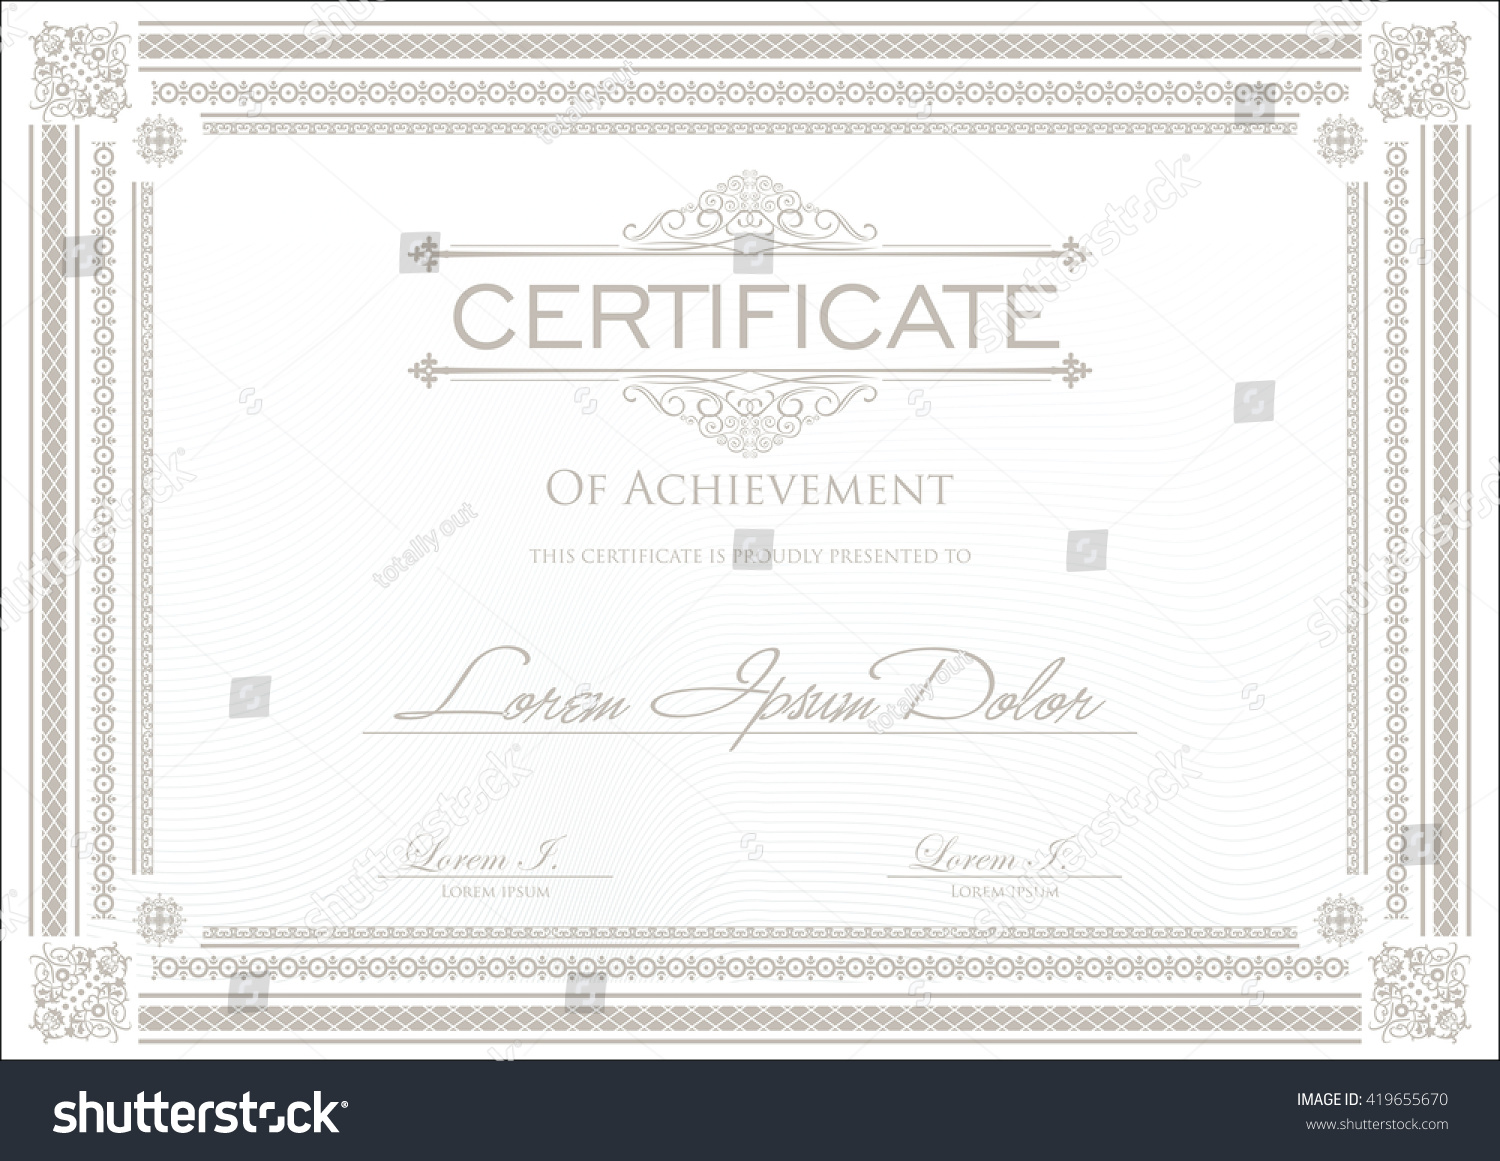 Stock certificate example technology roadmap printable receipt certificate or diploma template on indemnity form template stock vector certificate or diploma template 419655670 certificate xflitez Choice Image